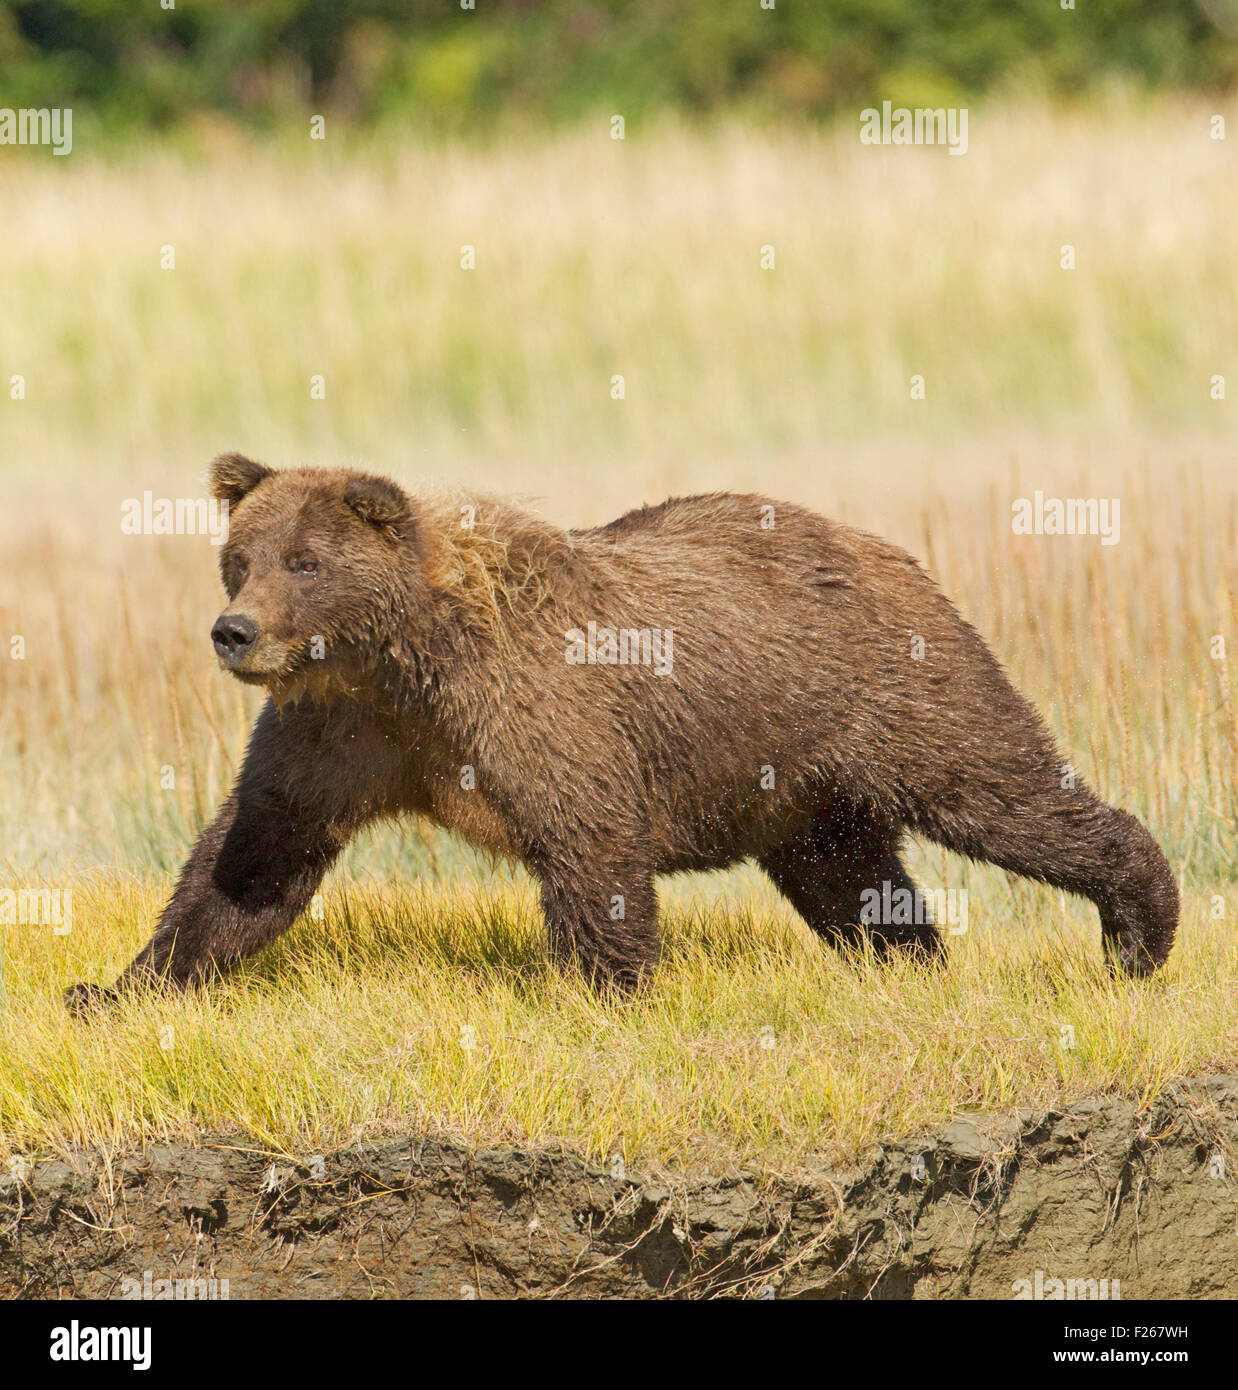 Grizzly Bear Running - Stock Image